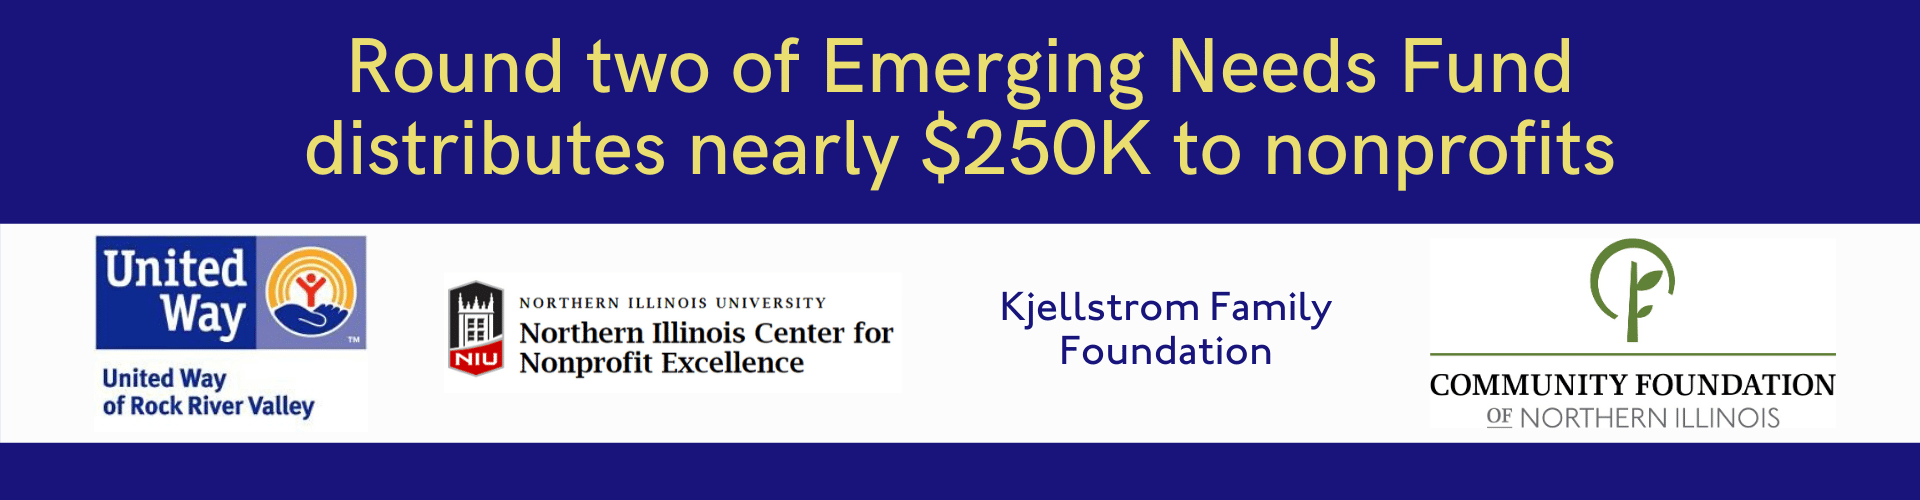 Round Two of Emerging Needs Fund distributes nearly $250,000 to 31 Nonprofits